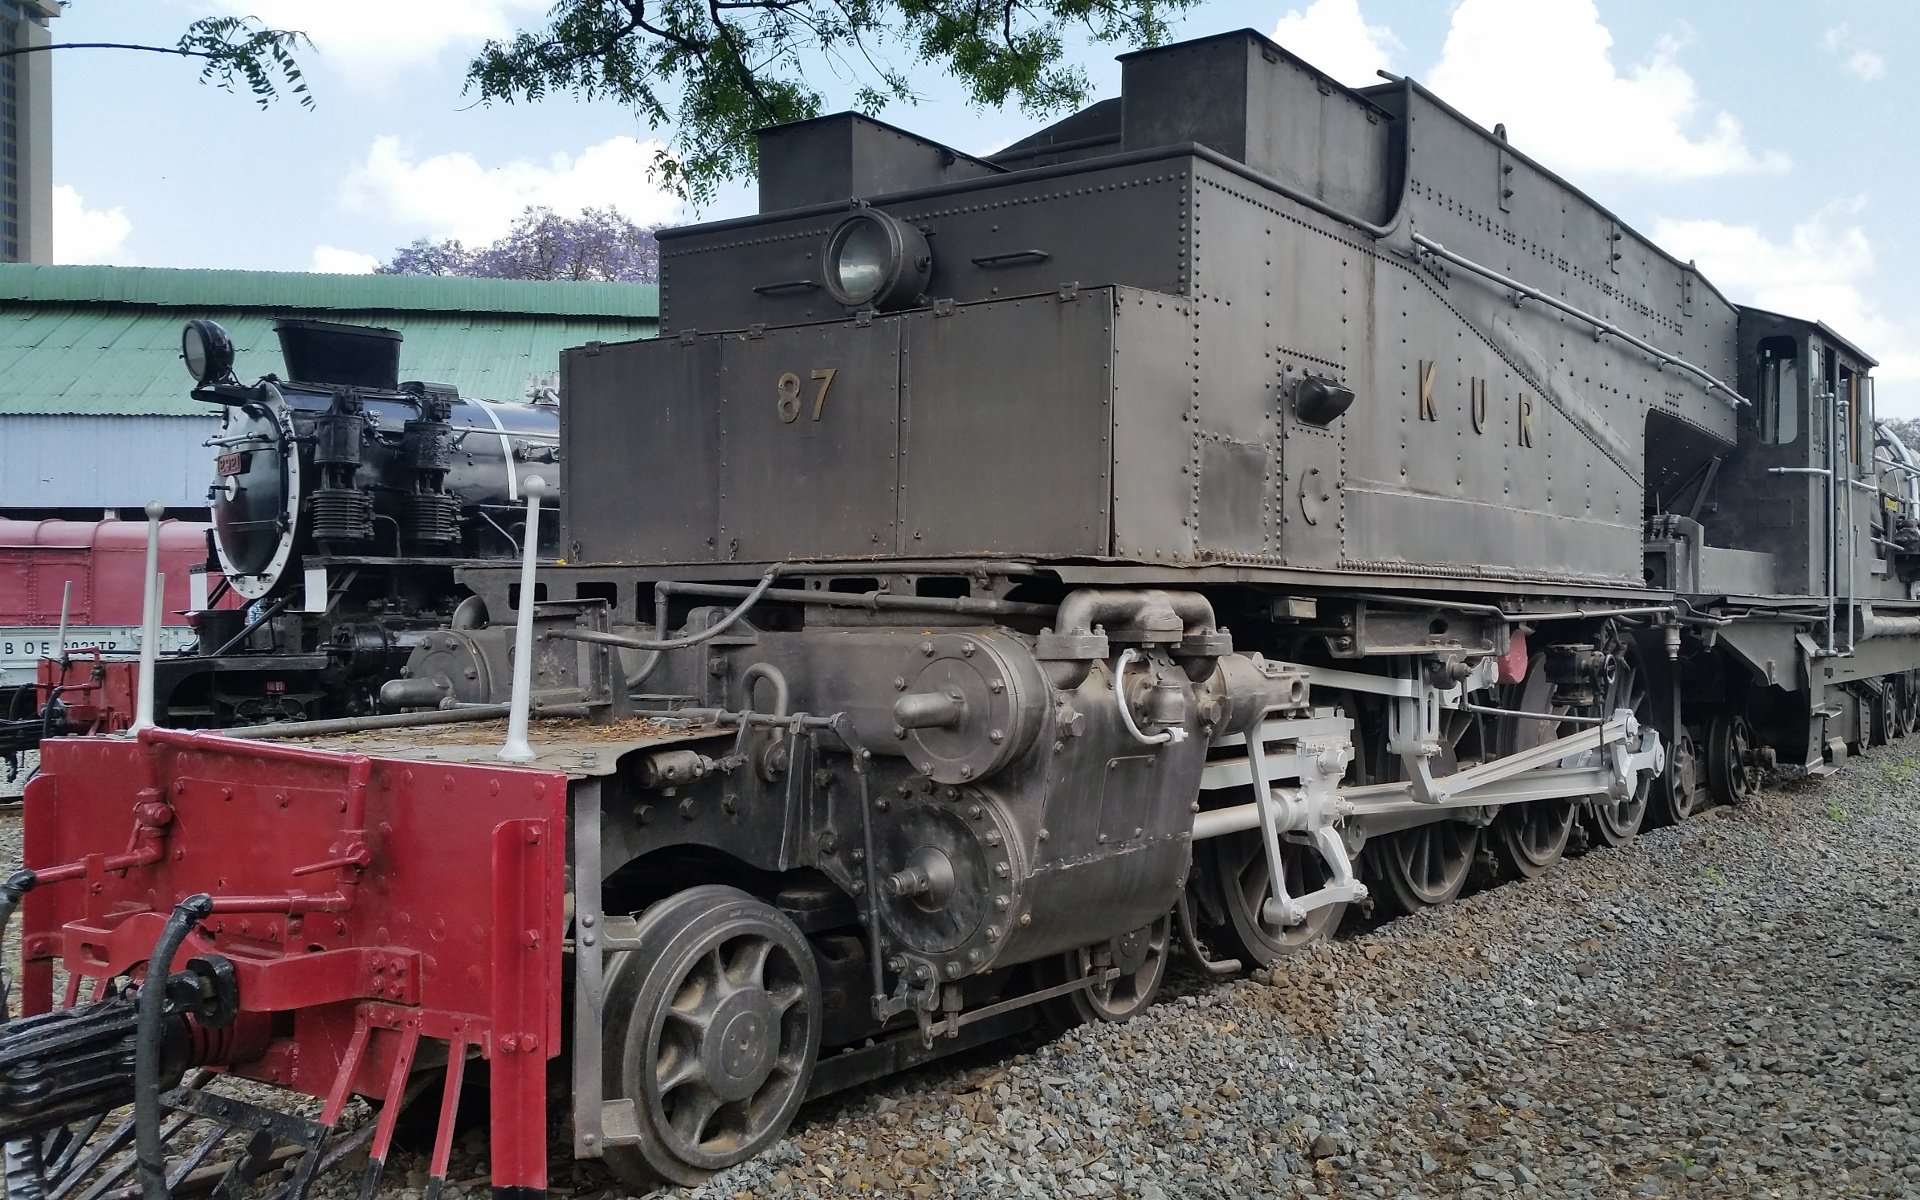 This 87 Garratt called Karamoja was built in Manchester. It was the most powerful type of train until the mid 1950s.